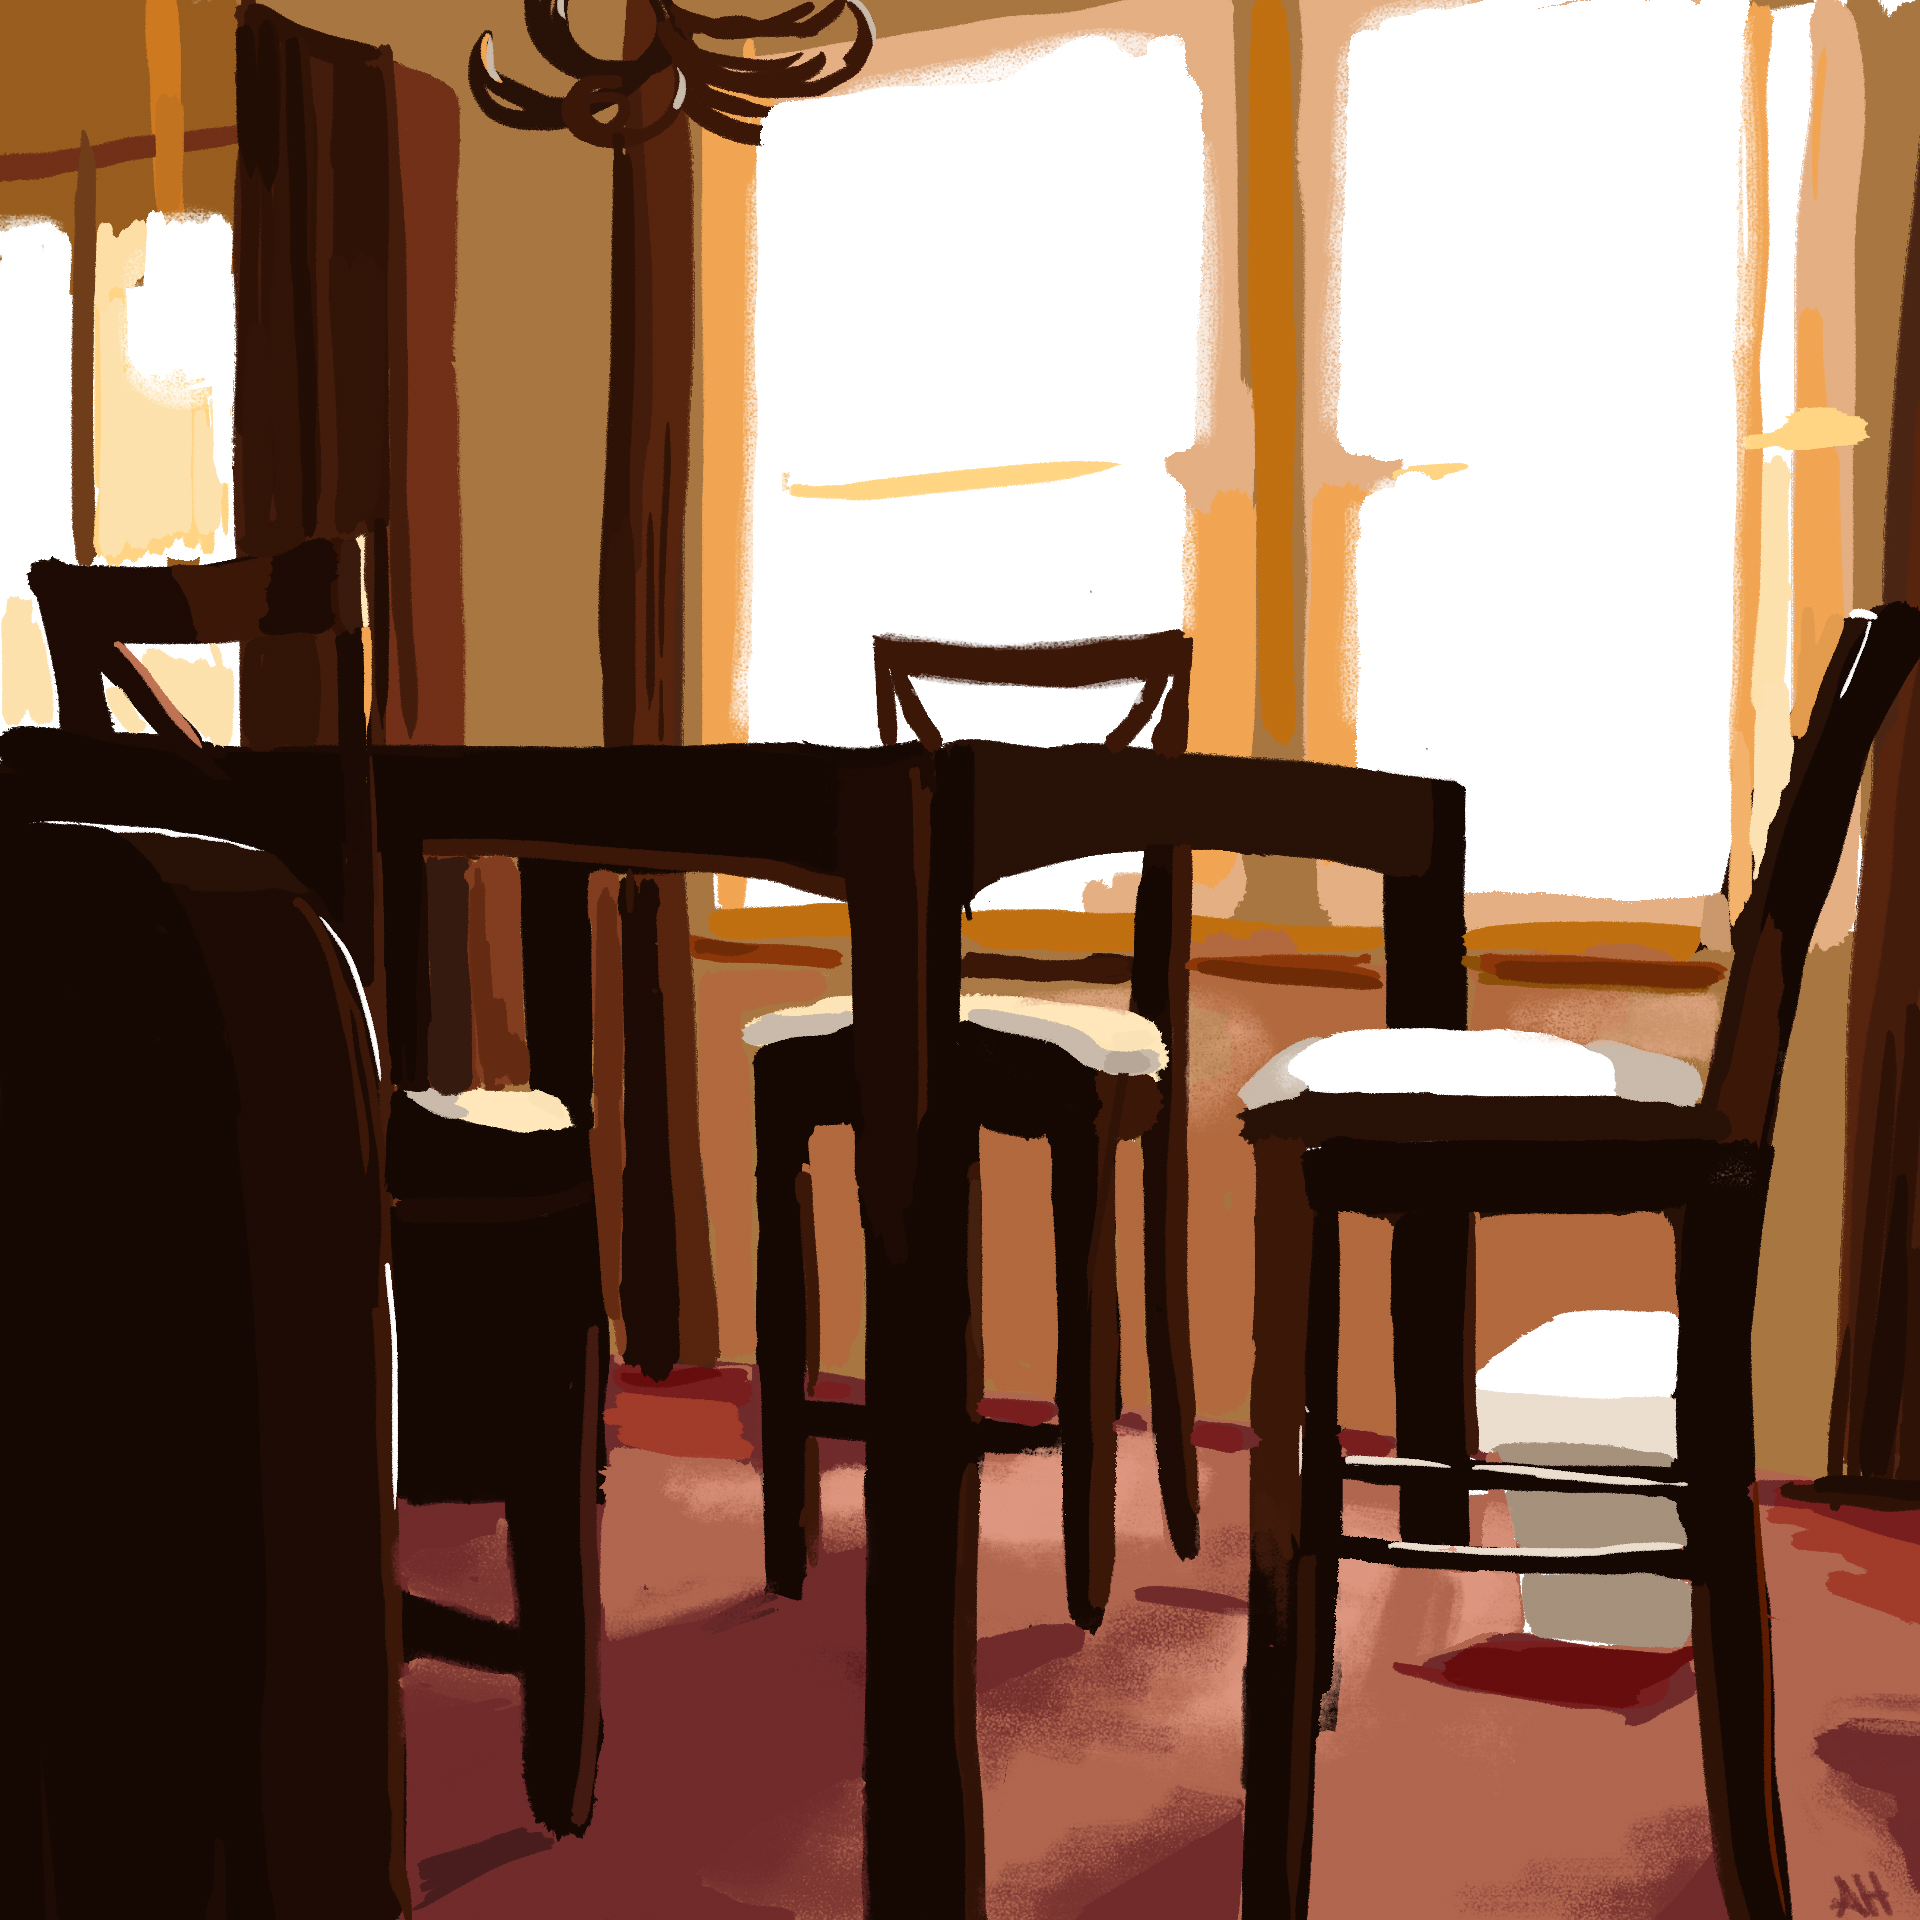 a color study of the furniture set in my dining room during a sunny afternoon